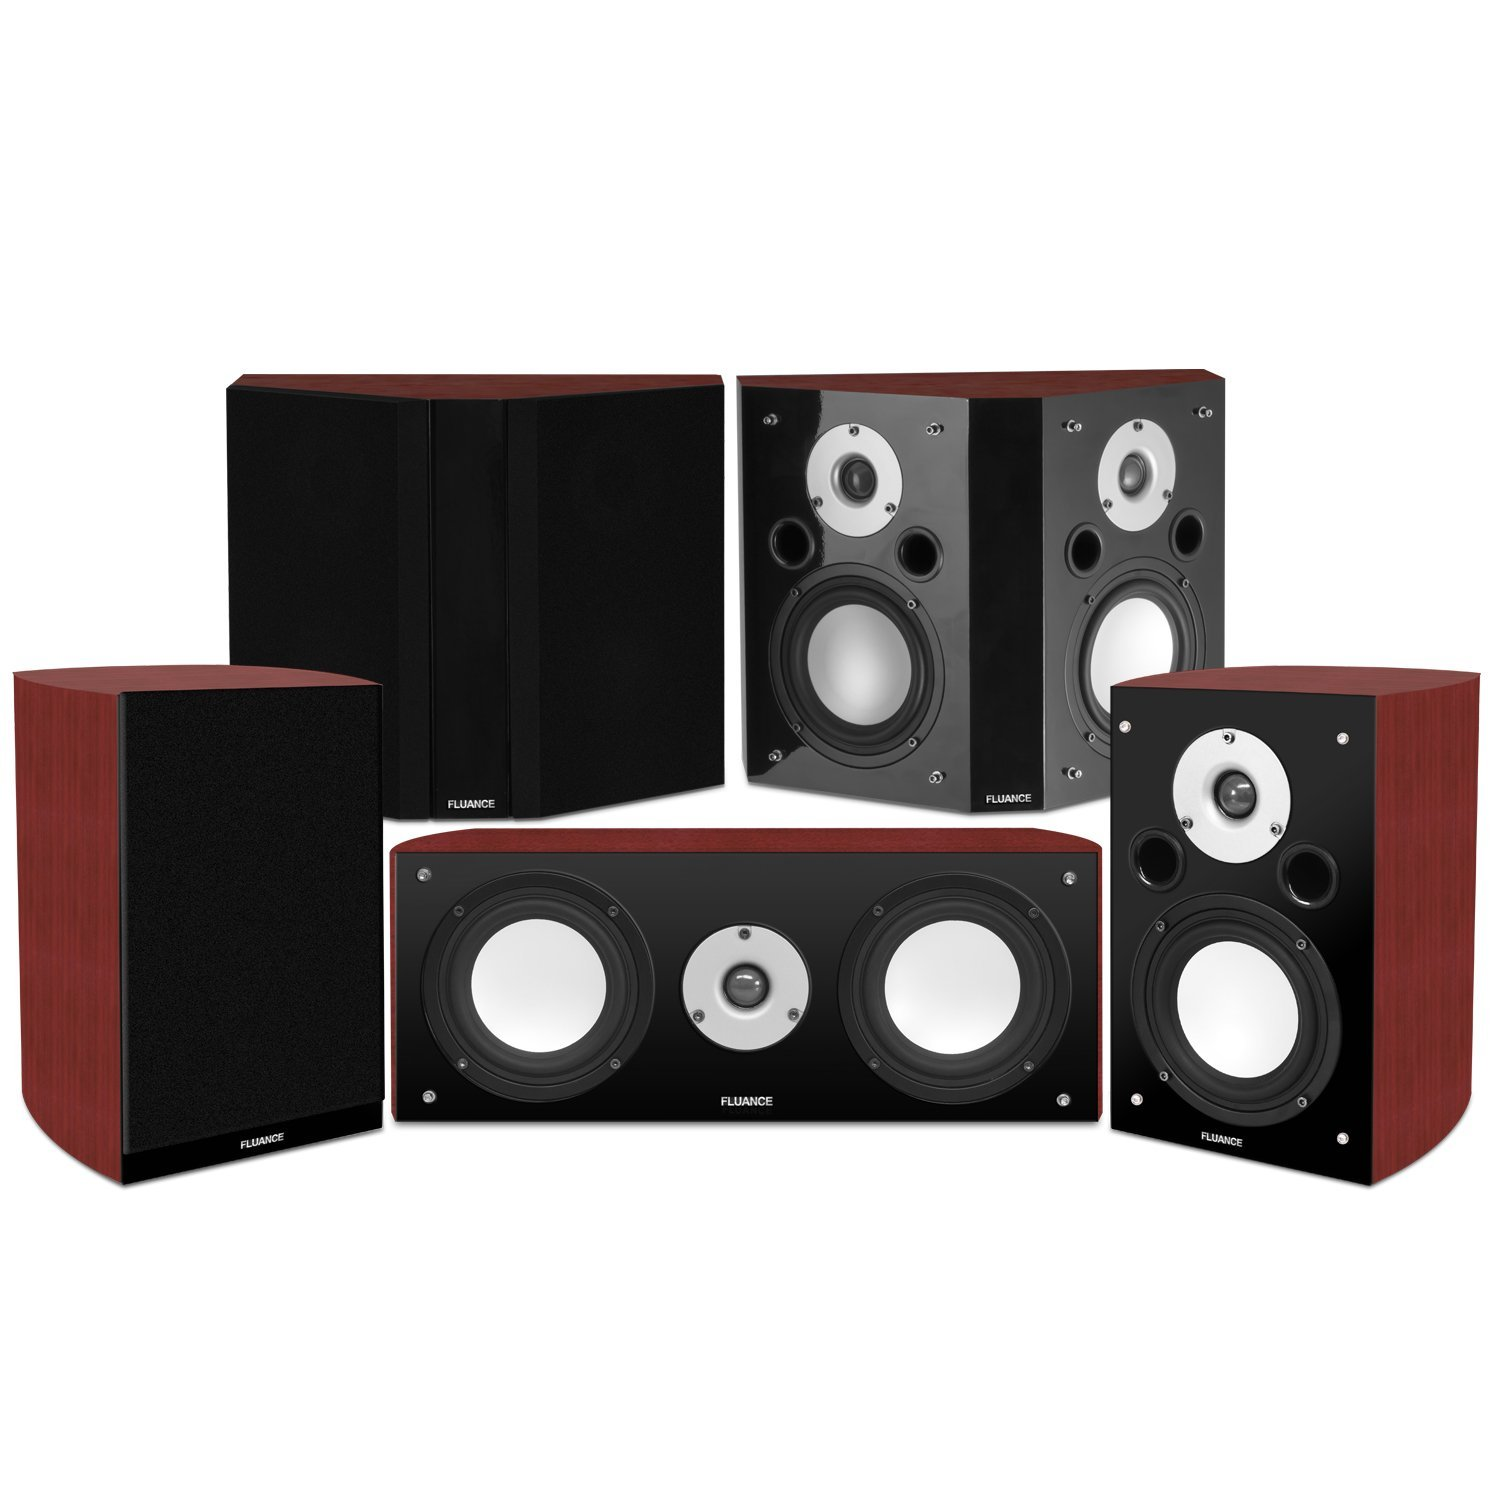 Cheap Surround Sound System Under 500 Best Reviews Multi Channel Systems